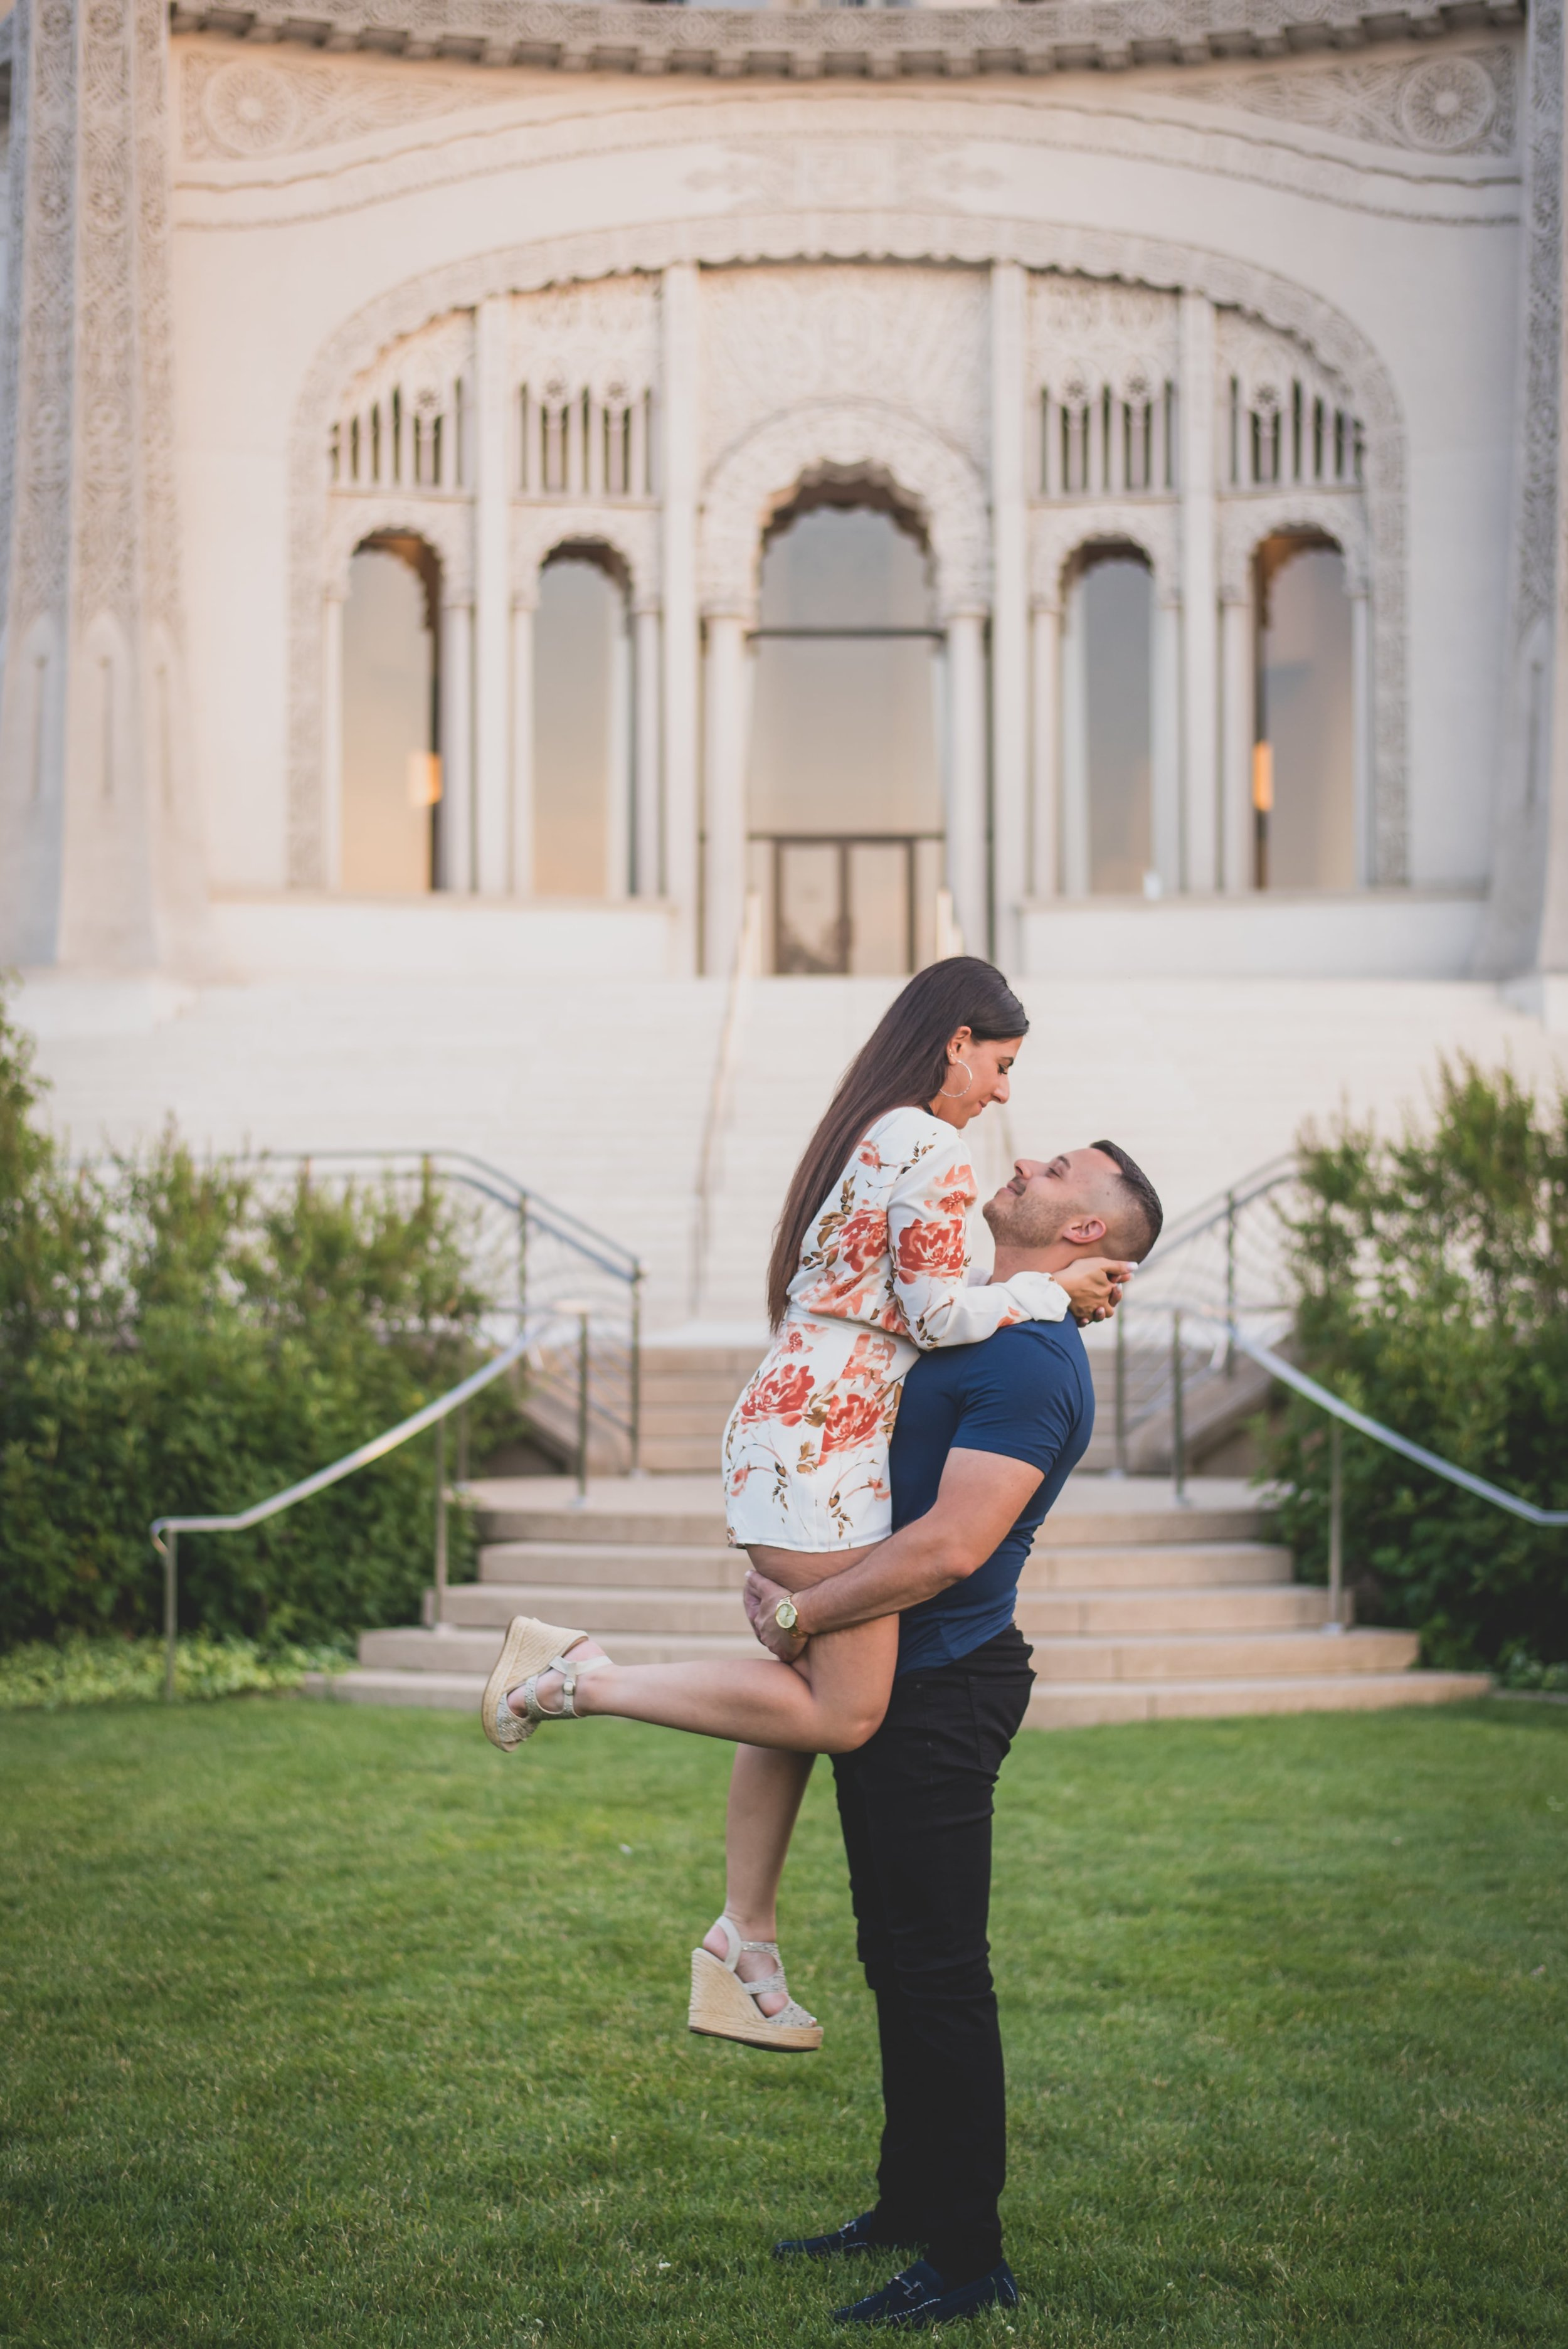 Man carrying his fiance in front of a stone temple.